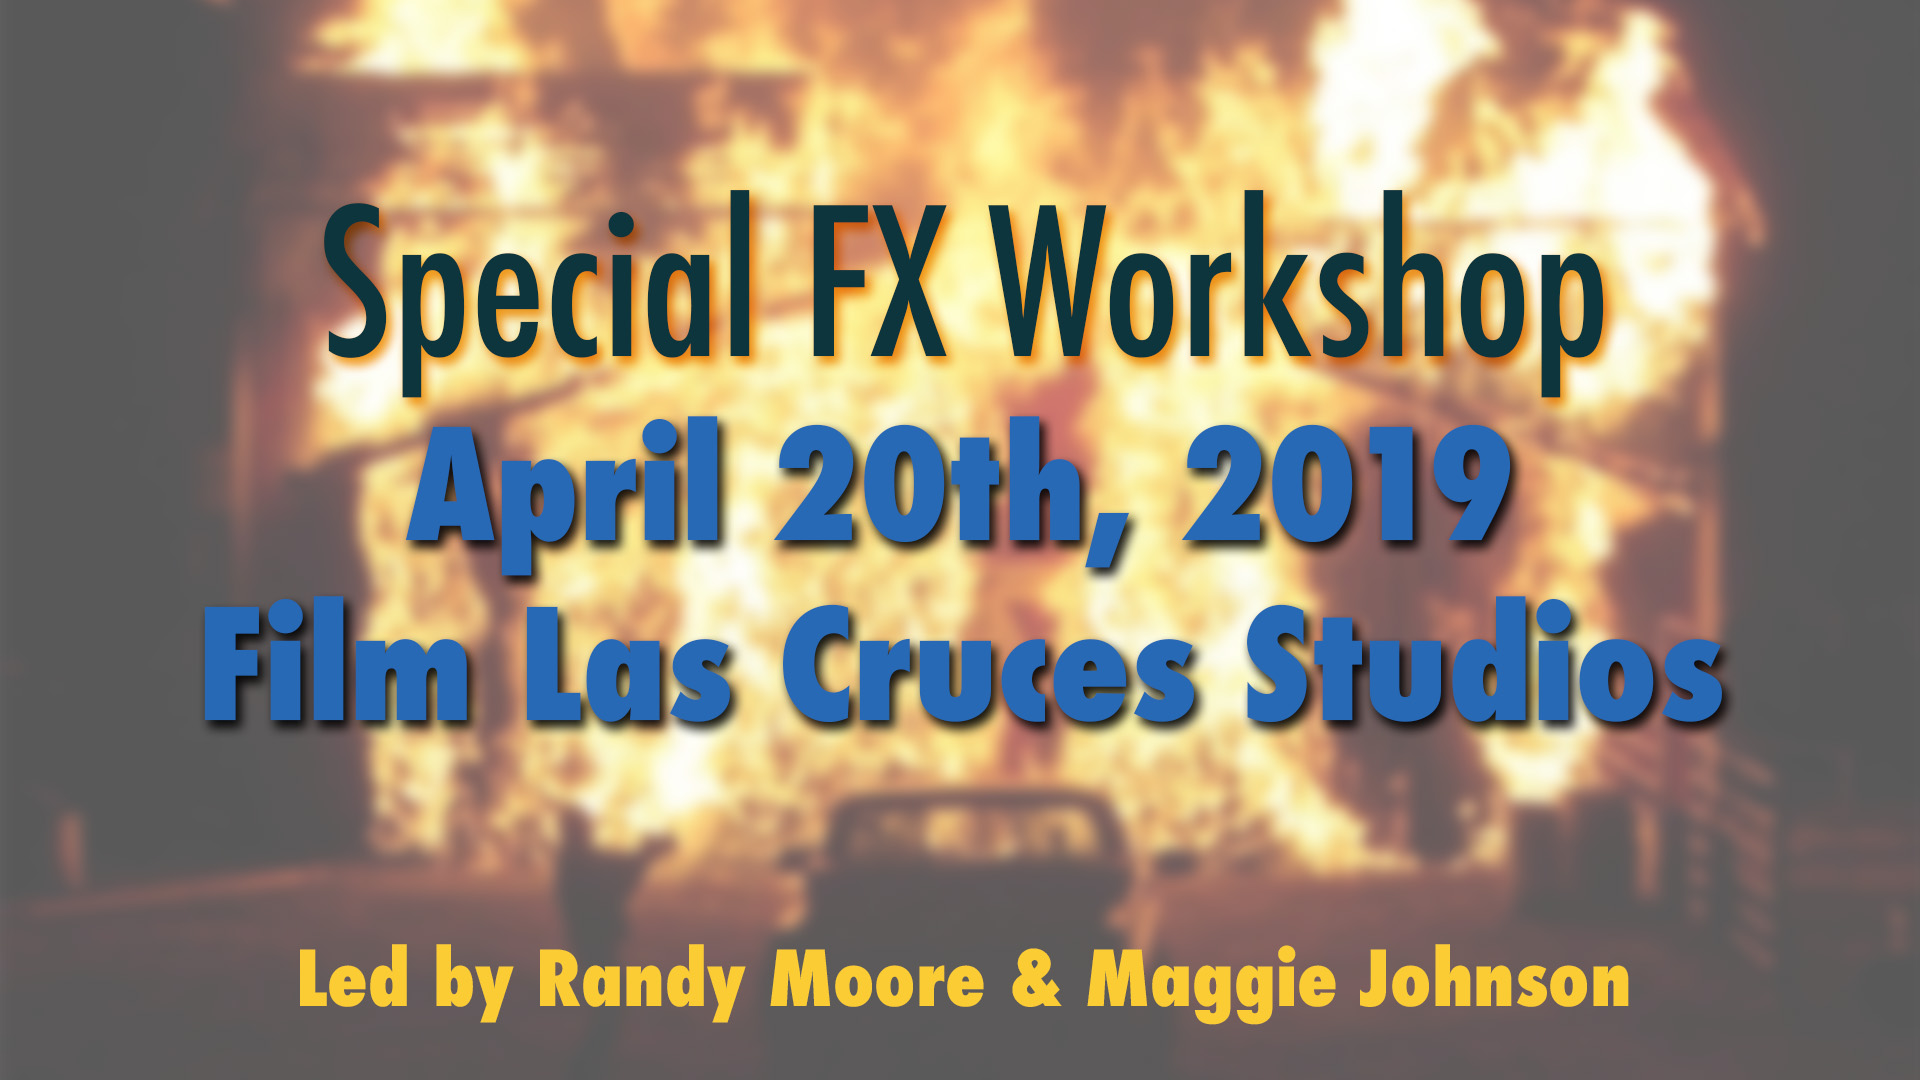 Film Las Cruces To Host Special FX Training